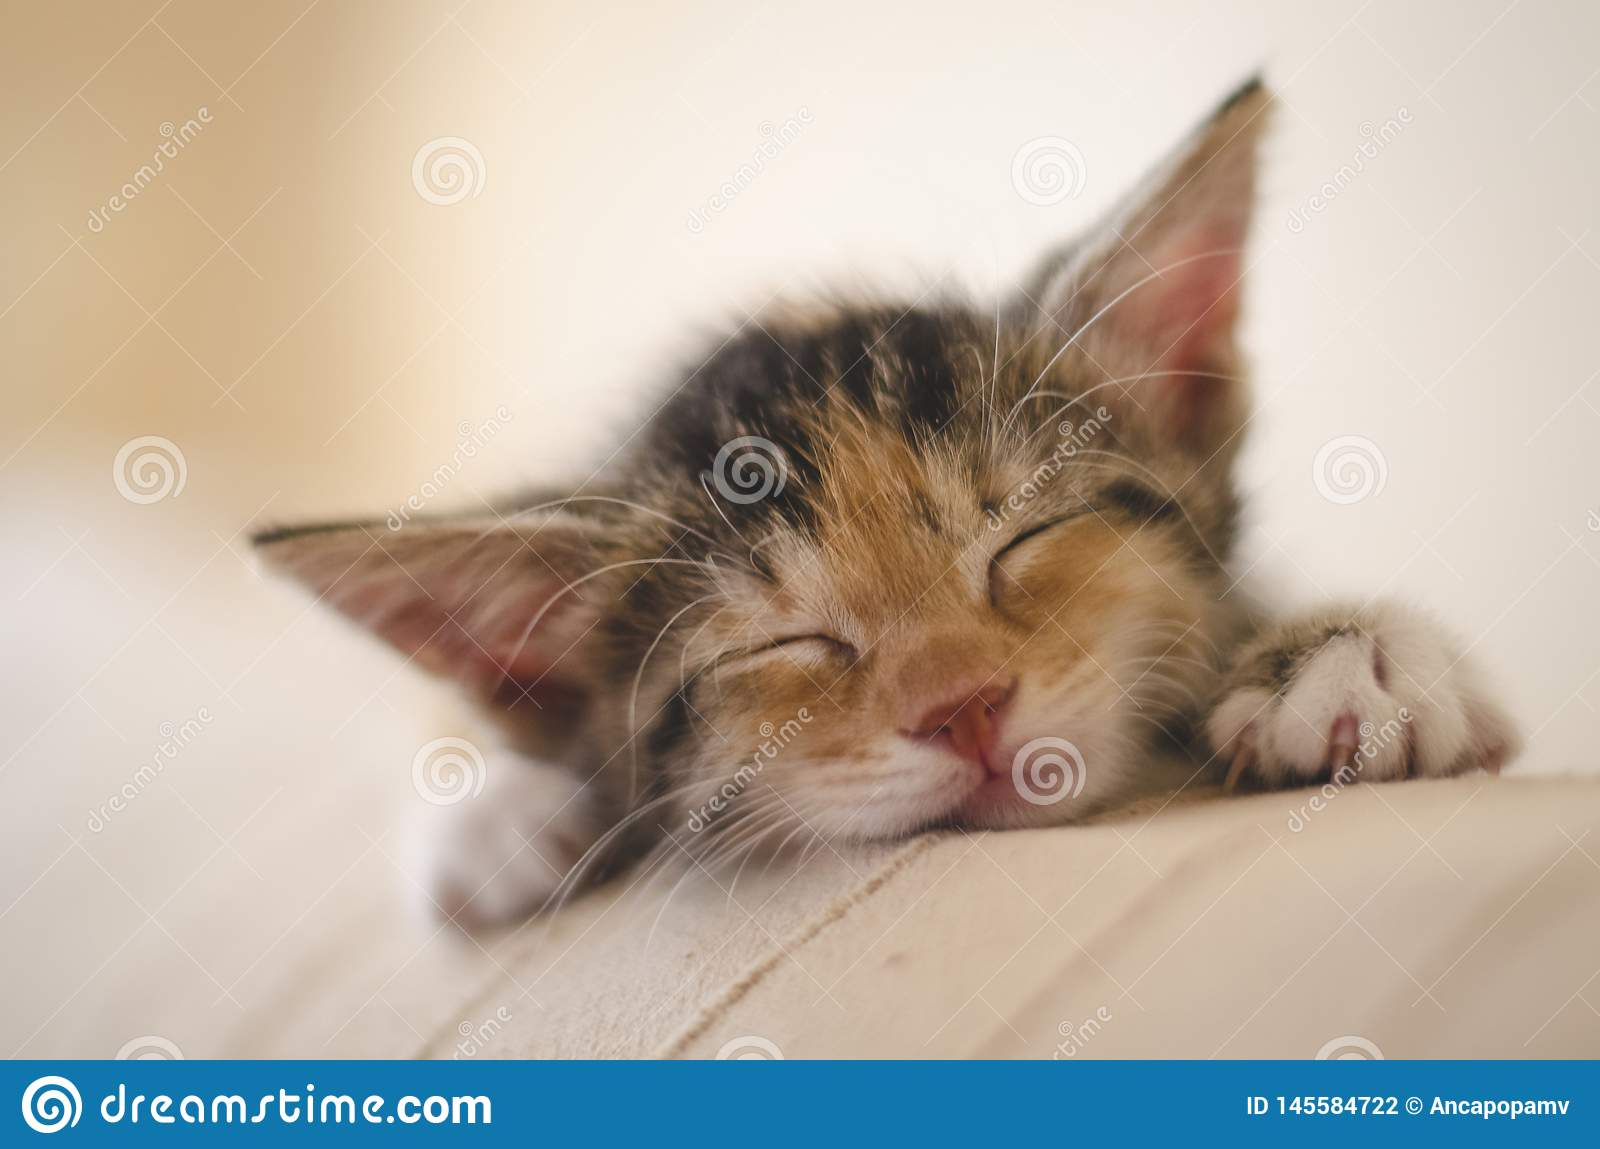 Tired rescued 6 weeks cute calico kitten sleeping and dreaming on the sofa